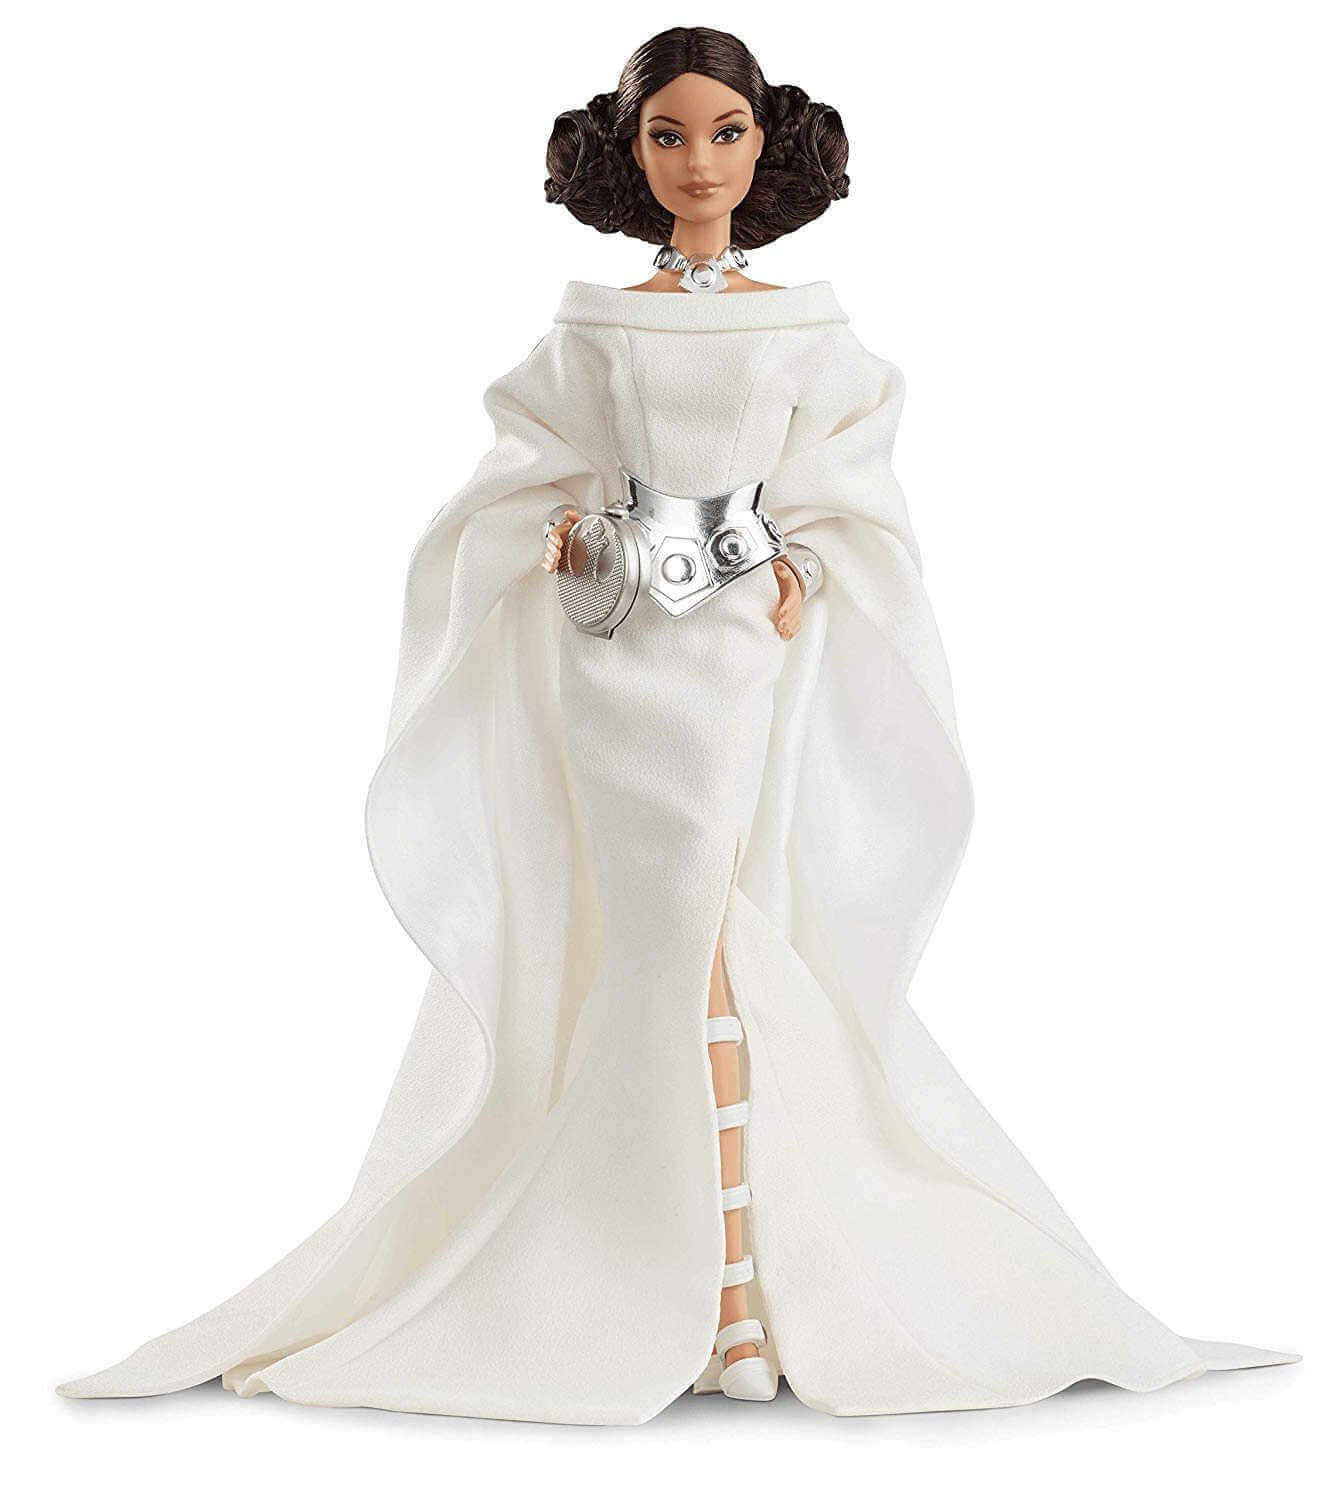 Barbie star wars princesa leia